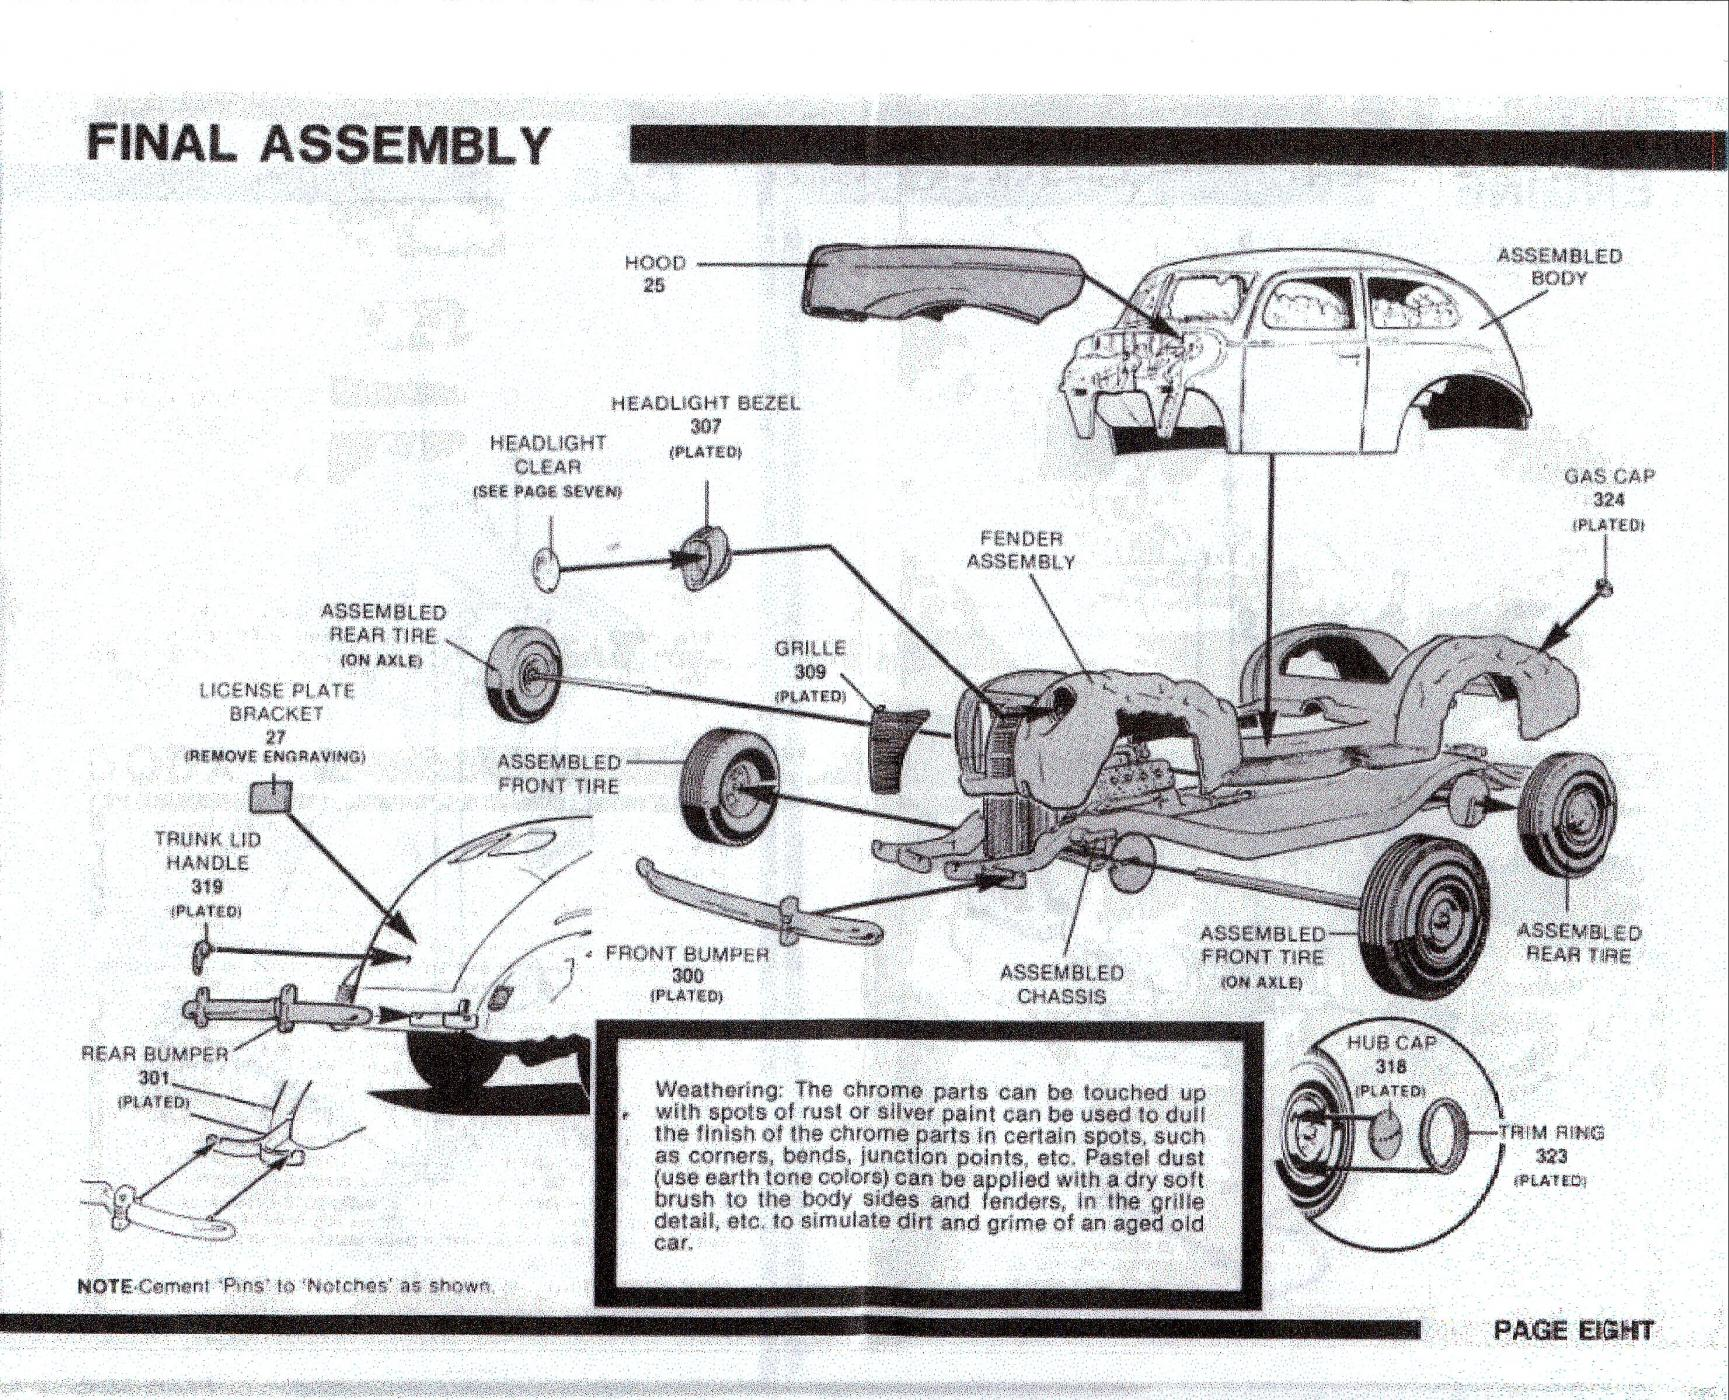 Vin Location 1 Top Frame Images For as well 49 54 Chevy Passenger Car Chassis Diagram additionally Vin Number Decoding as well 1936 Ford Vin Number Location furthermore 1937 Chevy Truck Wiring Diagram. on 1936 ford vin location